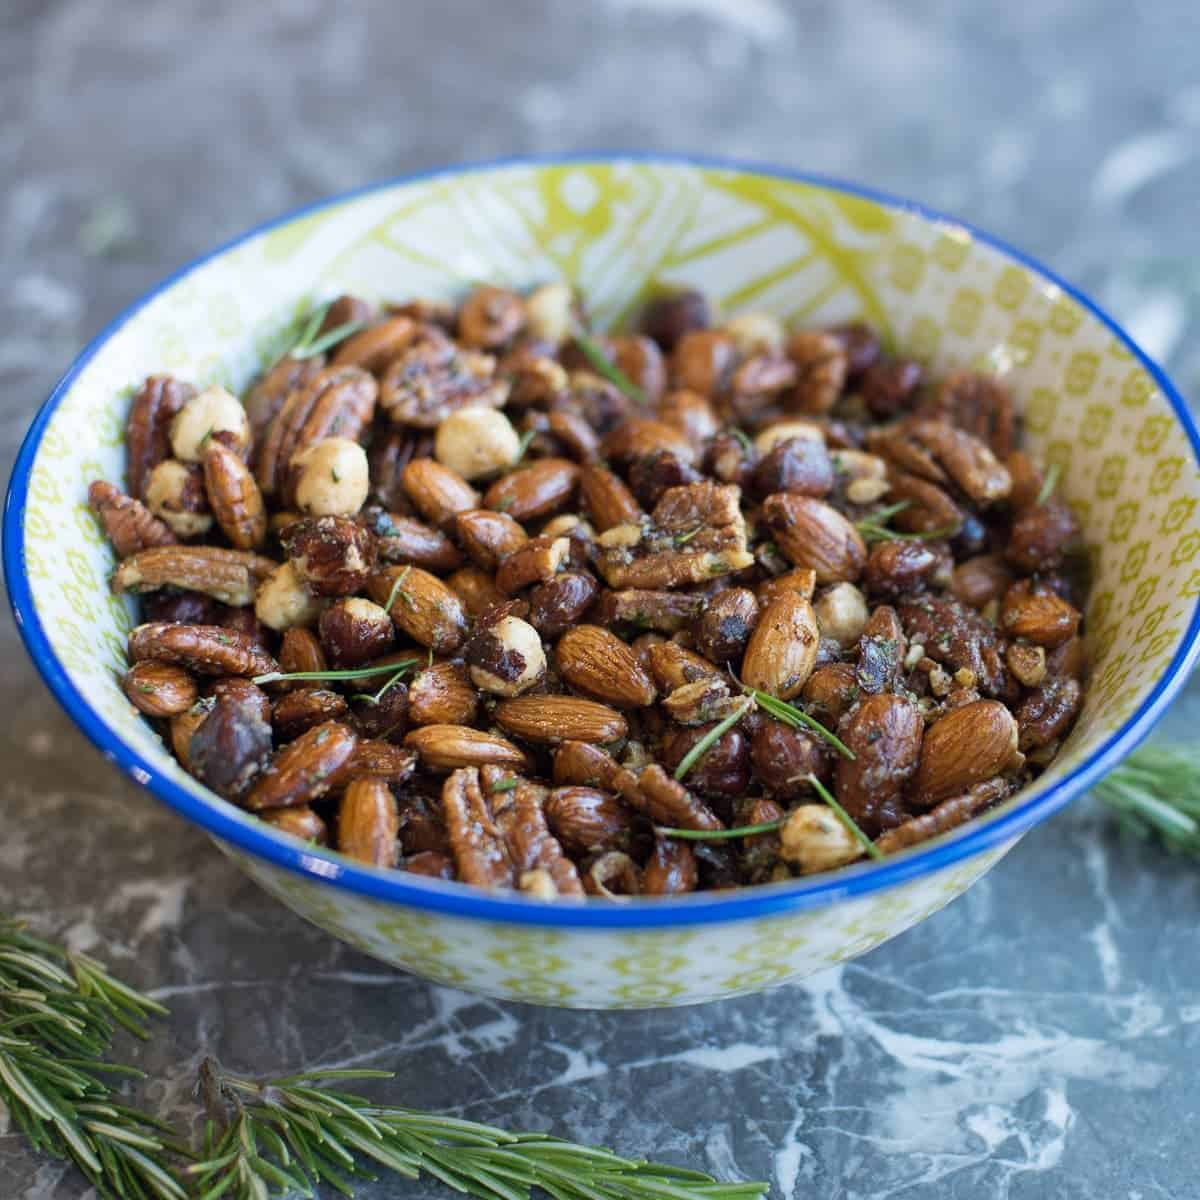 bowl of savory spiced nuts